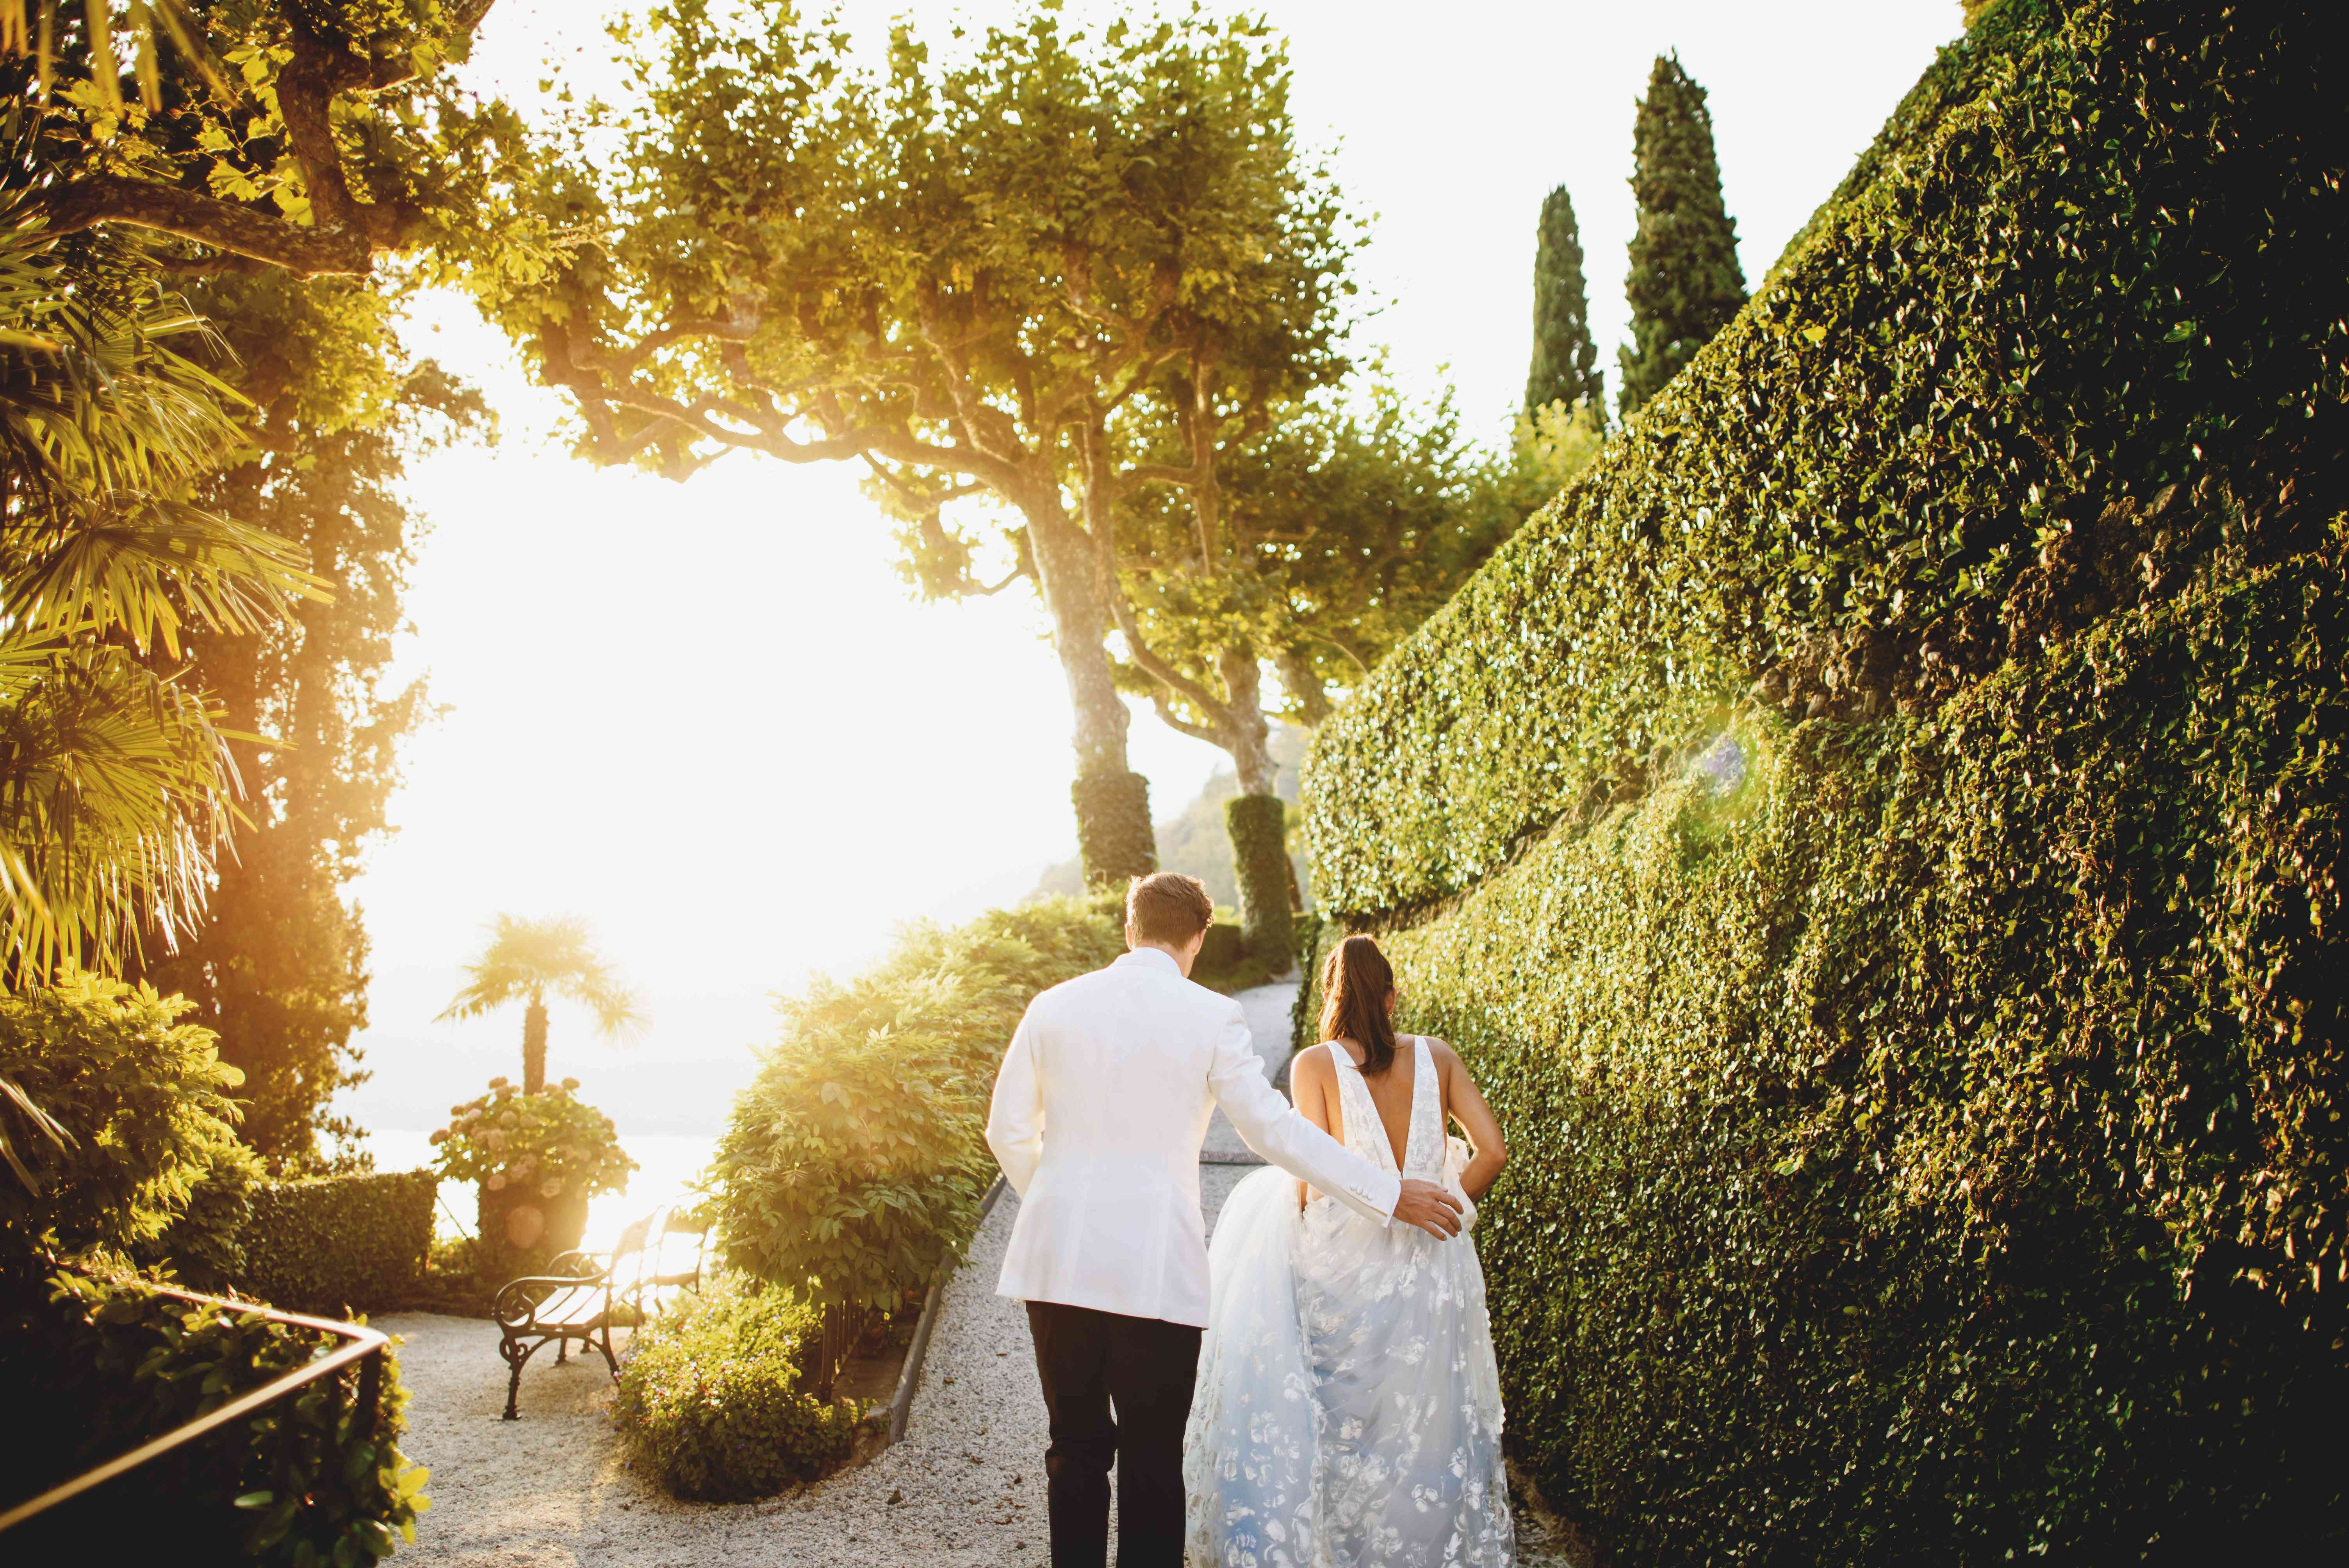 bride and groom in garden at sunset